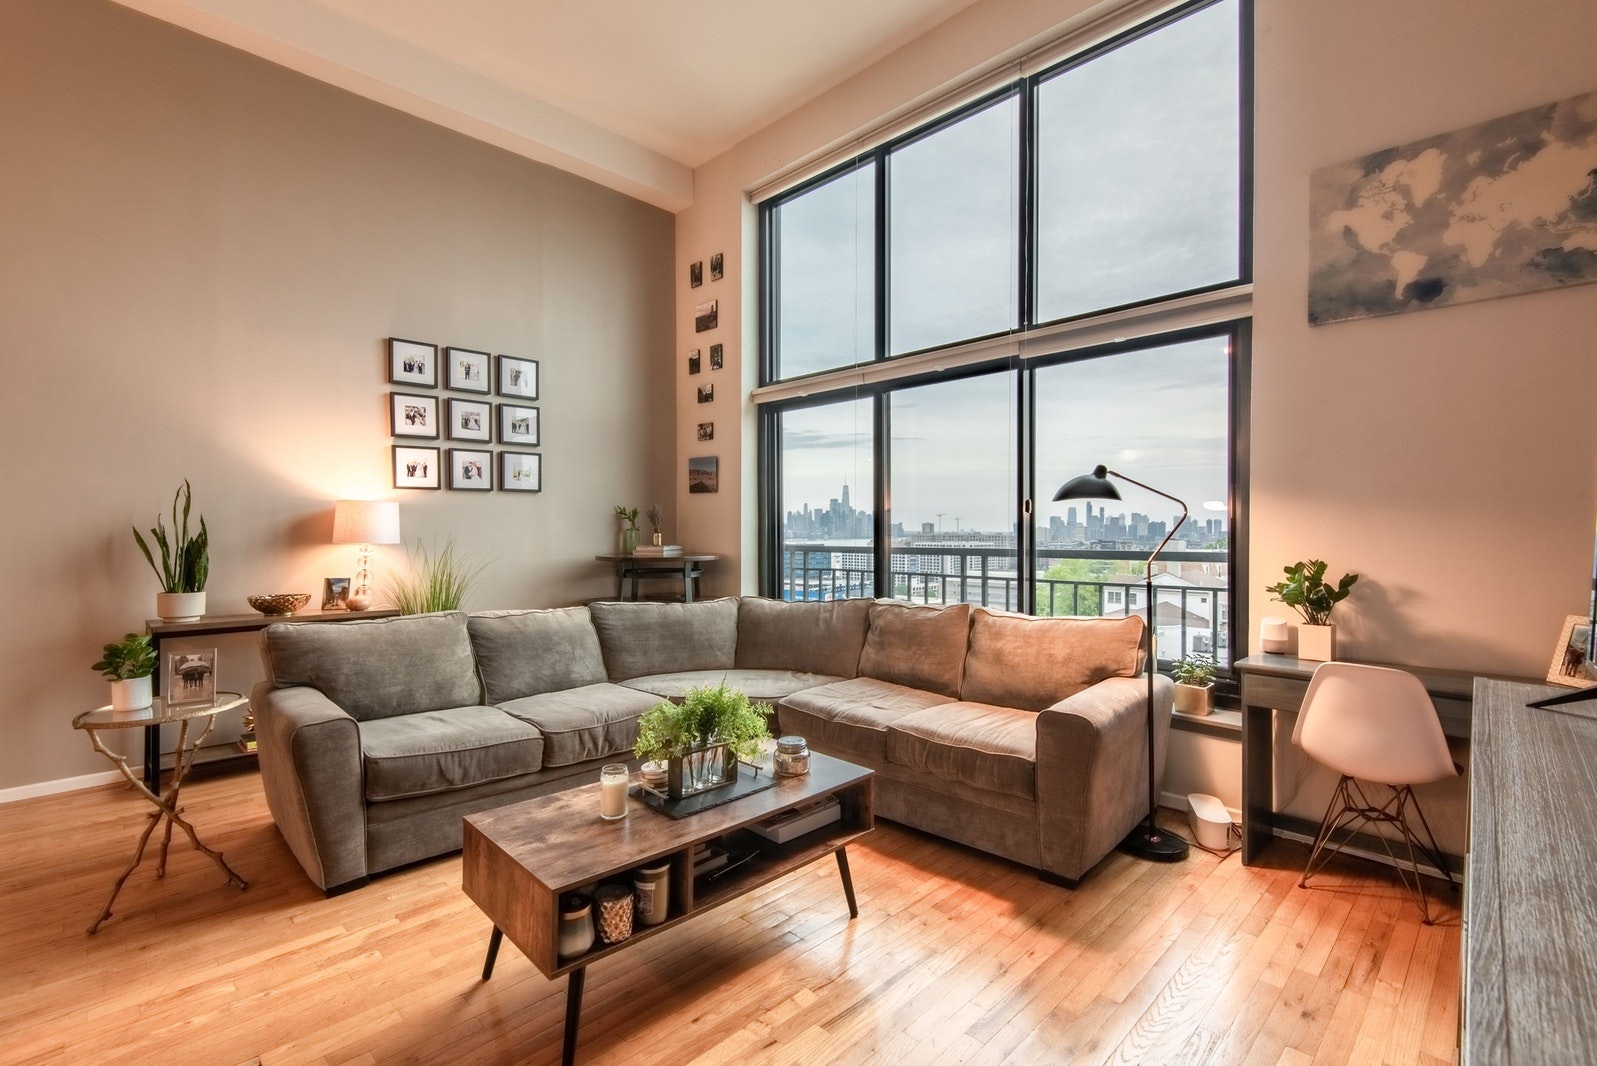 518 Gregory Ave A412, Weehawken, New Jersey, 07086, $439,000, Property For Sale, Halstead Real Estate, Photo 7